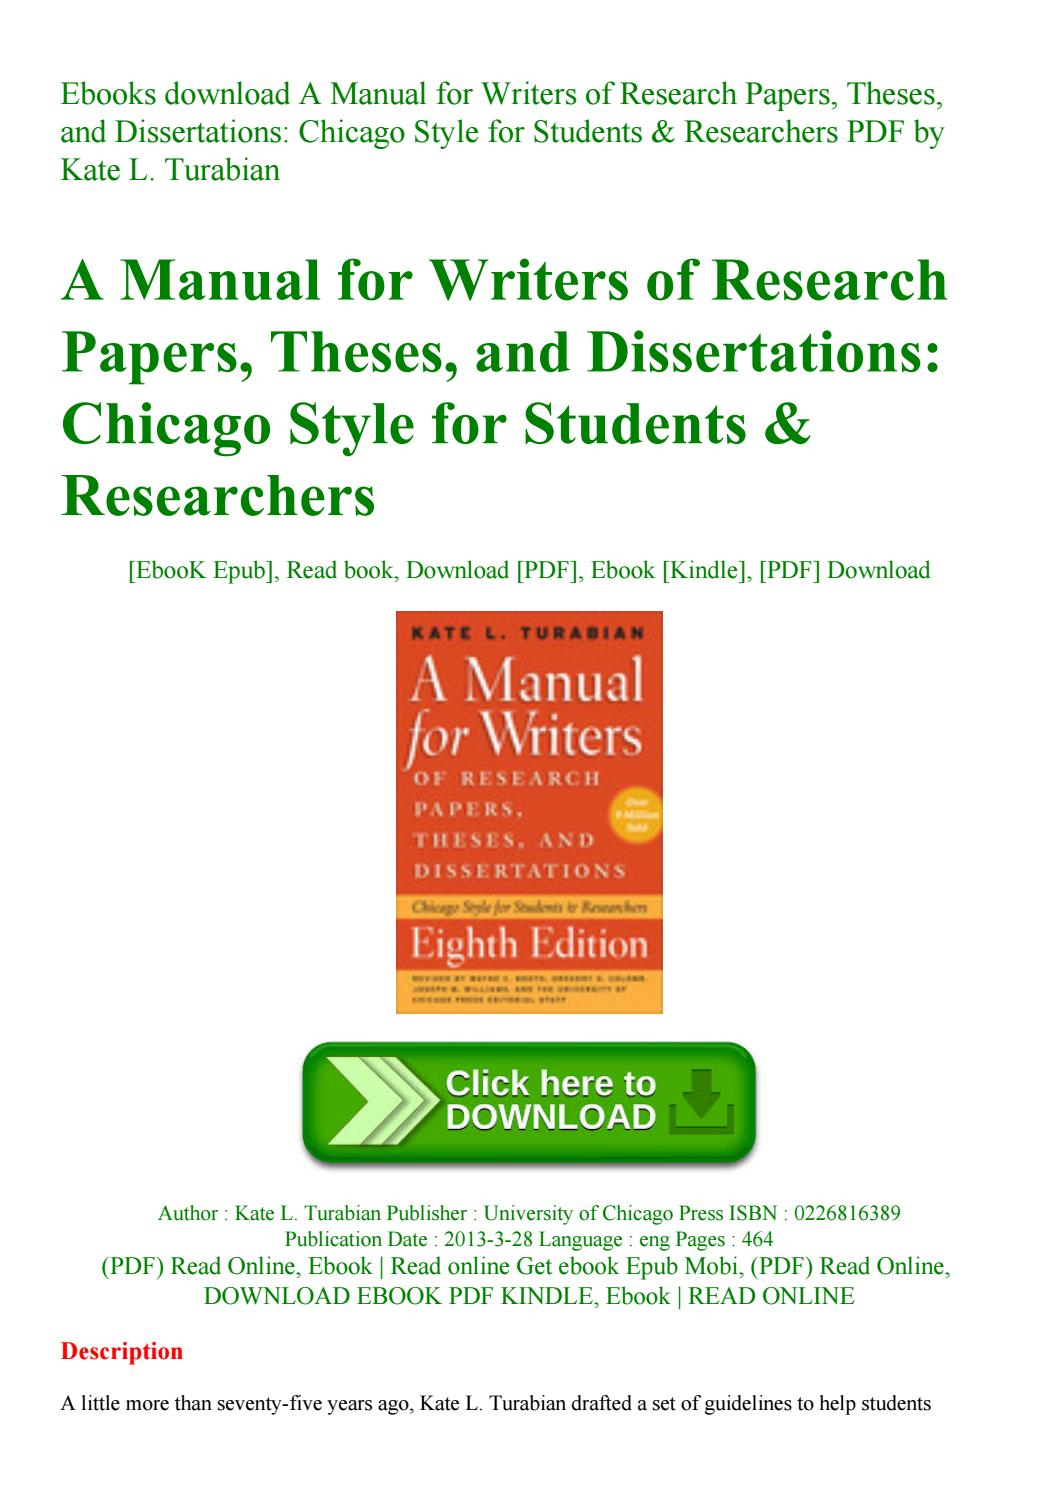 019 Research Paper Manual For Writers Of Papers Theses And Dissertations Page 1 Fearsome A Ed 8 Full